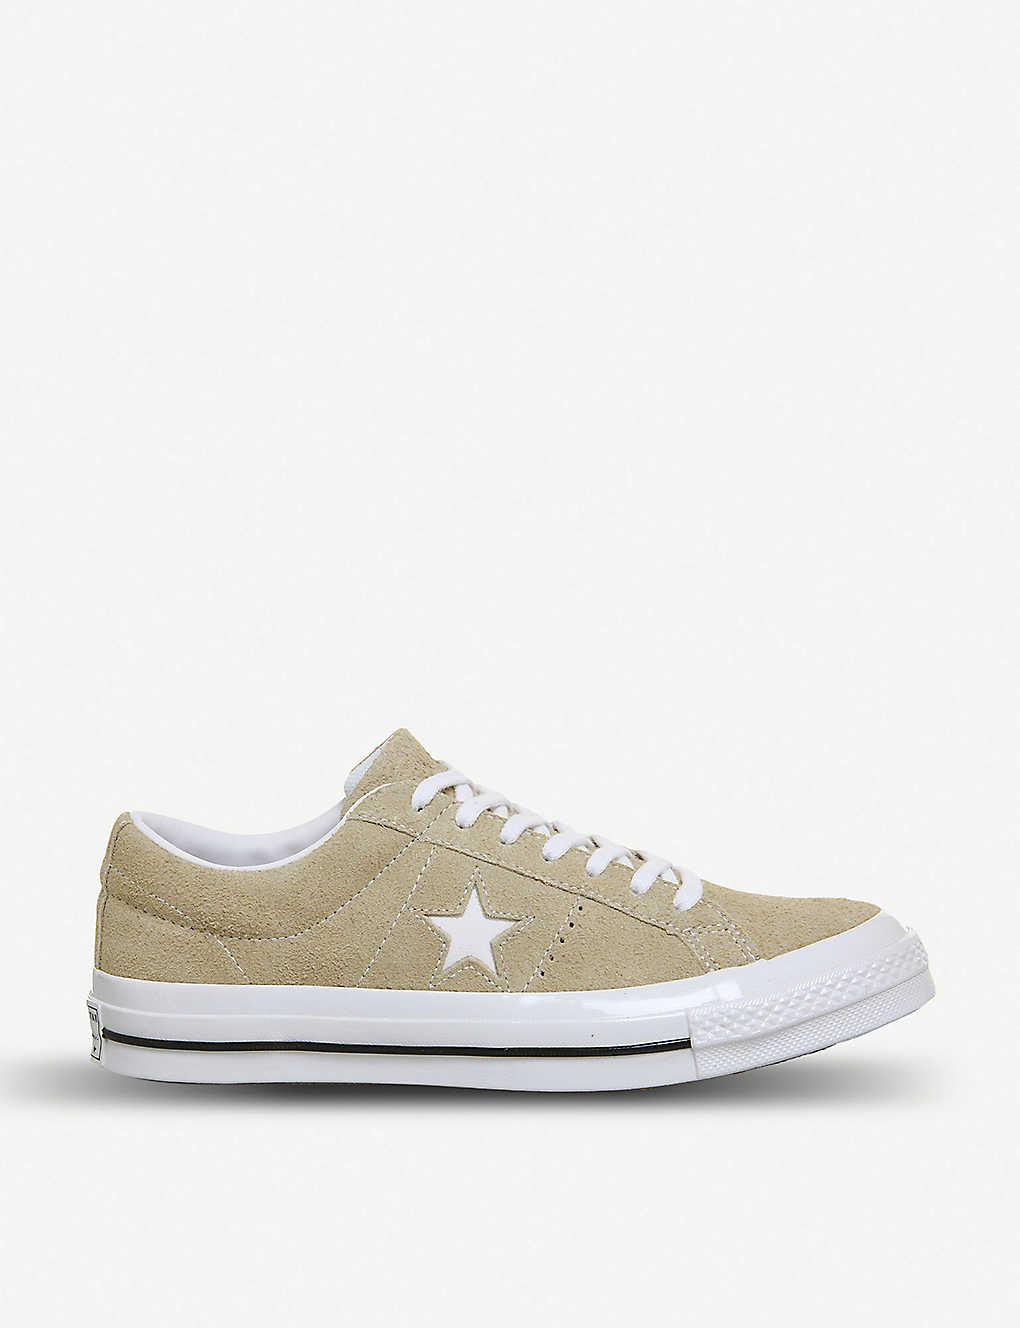 500ff3fa15d9 CONVERSE - One Star suede low-top trainers